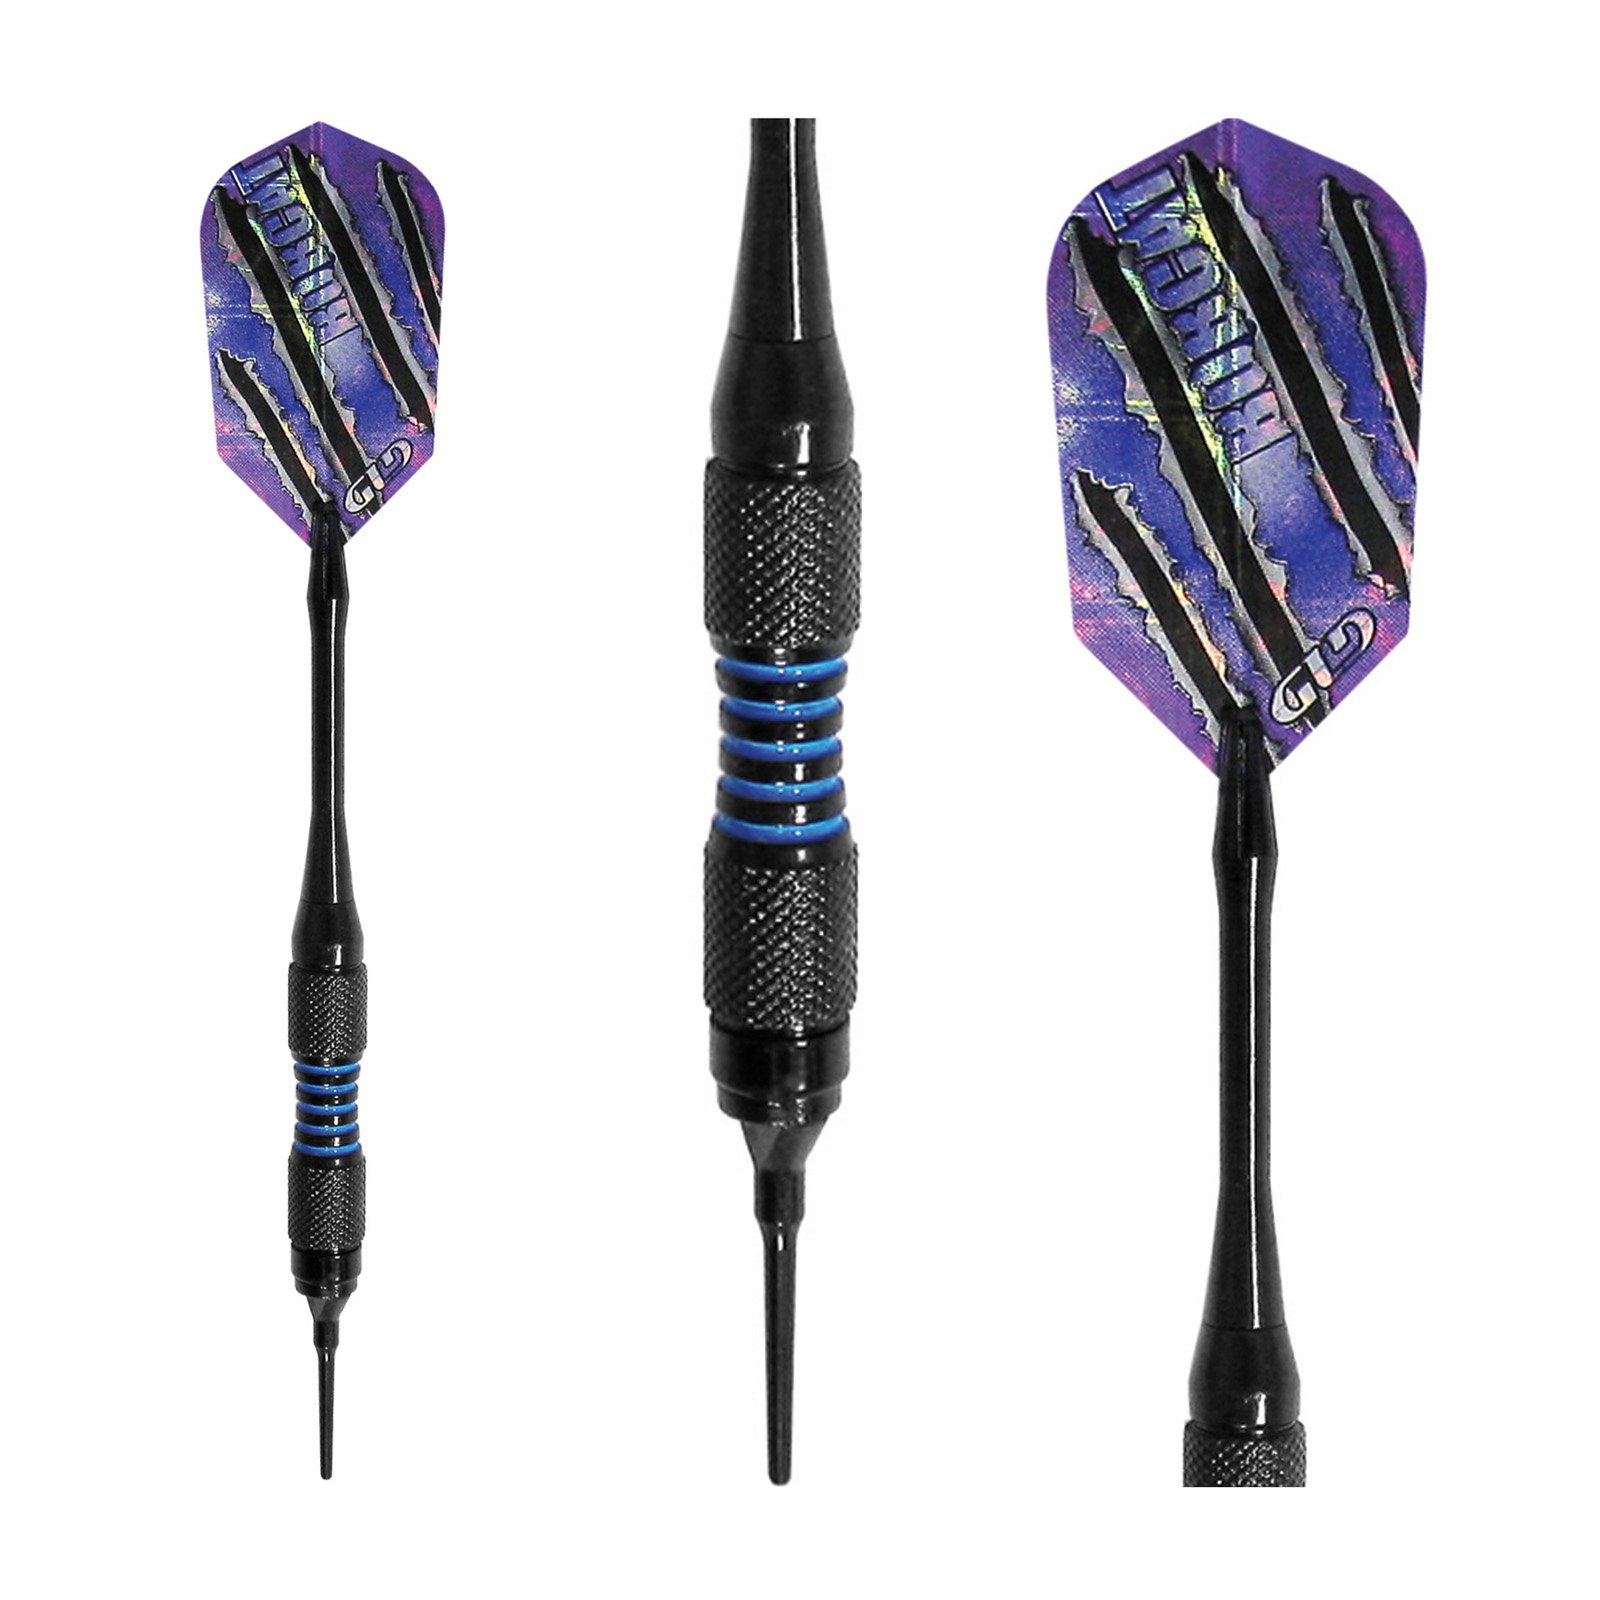 Viper Bobcat Adjustable Soft Tip Darts, 16-18Grams